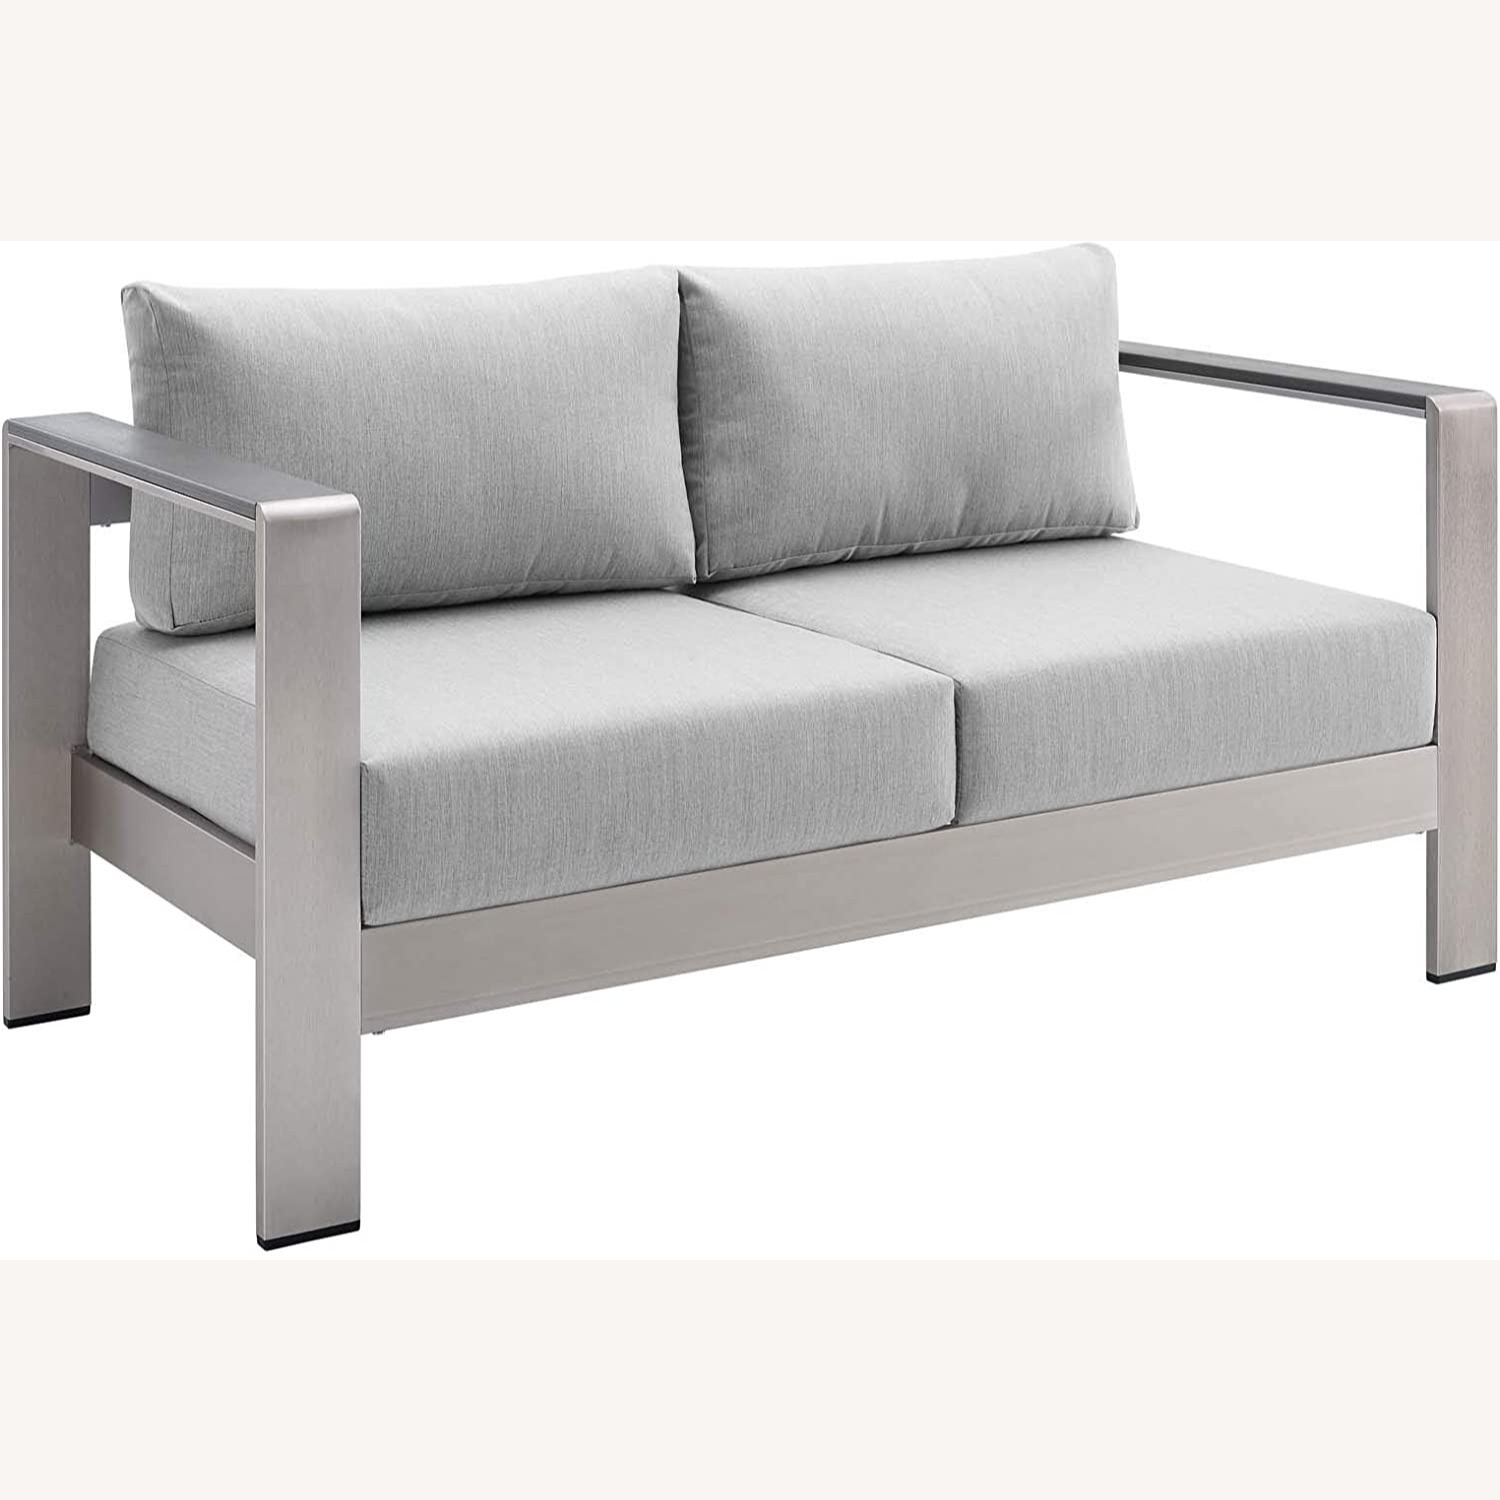 Outdoor Loveseat In Silver Aluminum Frame Finish - image-0